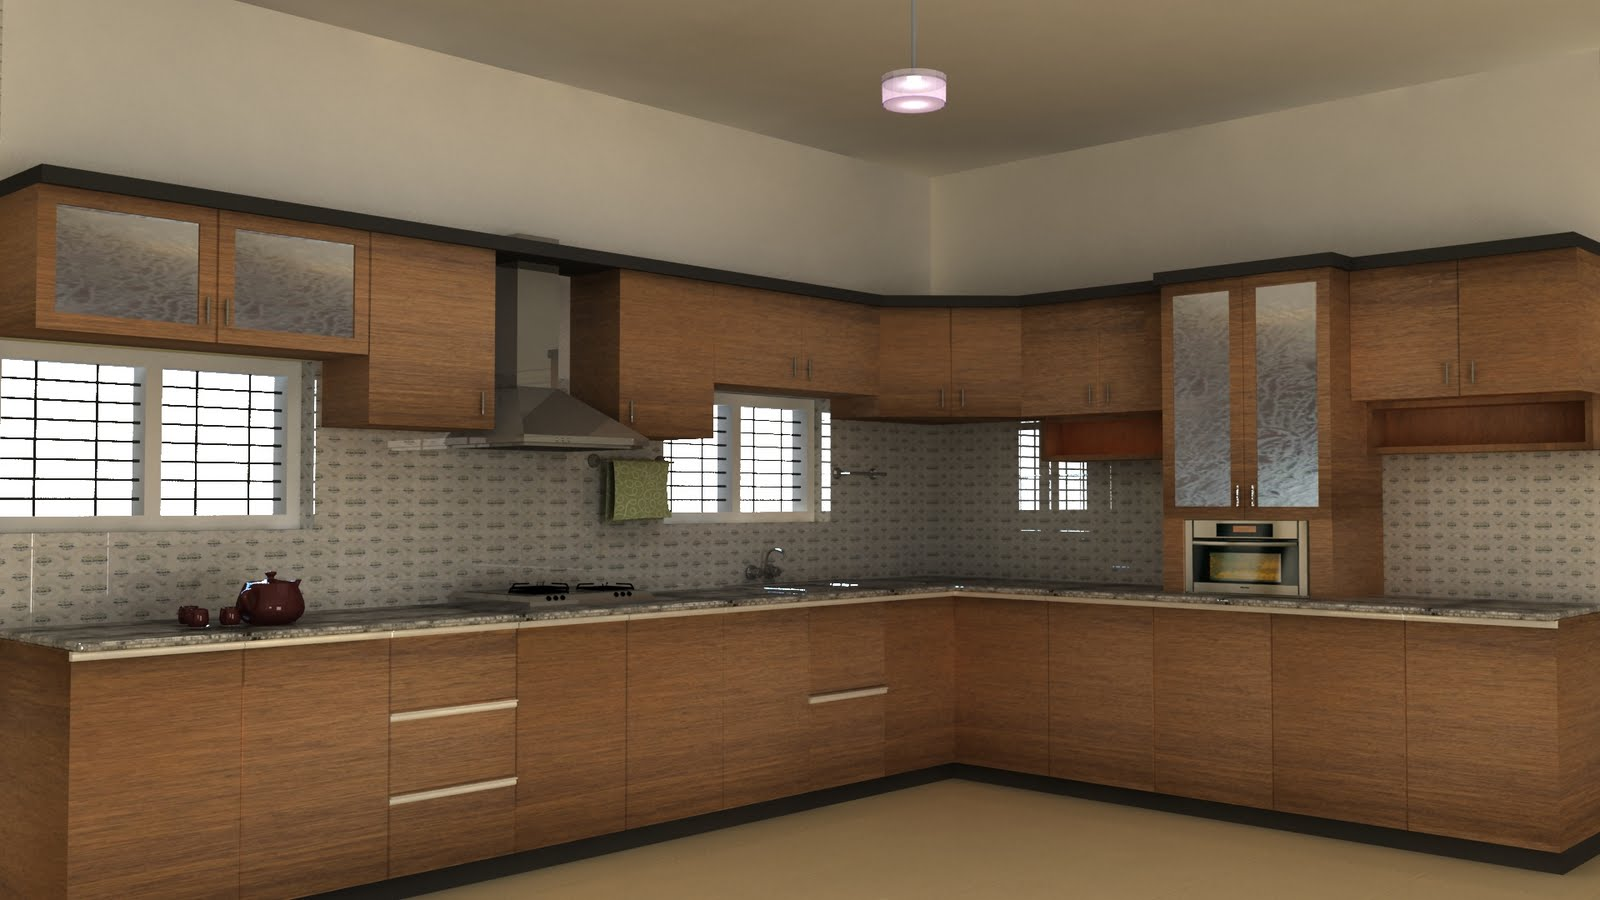 Remarkable Kerala Kitchen Interior Design 1600 x 900 · 123 kB · jpeg